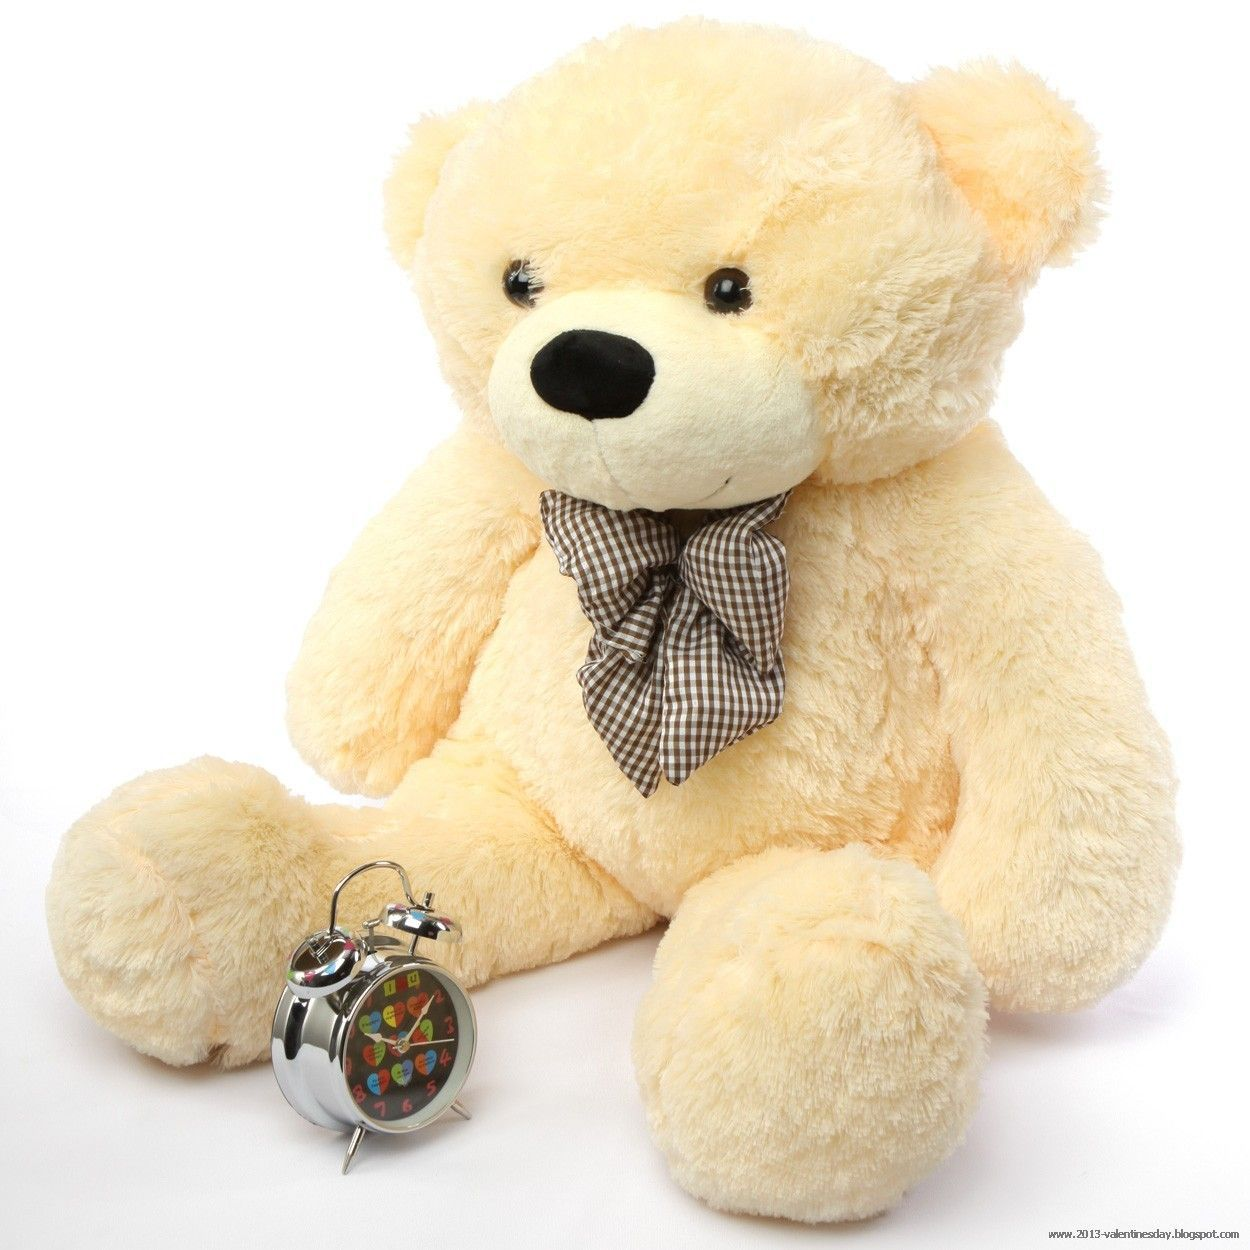 Teddy bear wallpapers hd pictures one hd wallpaper pictures teddy bear wallpapers hd pictures one hd wallpaper pictures voltagebd Gallery